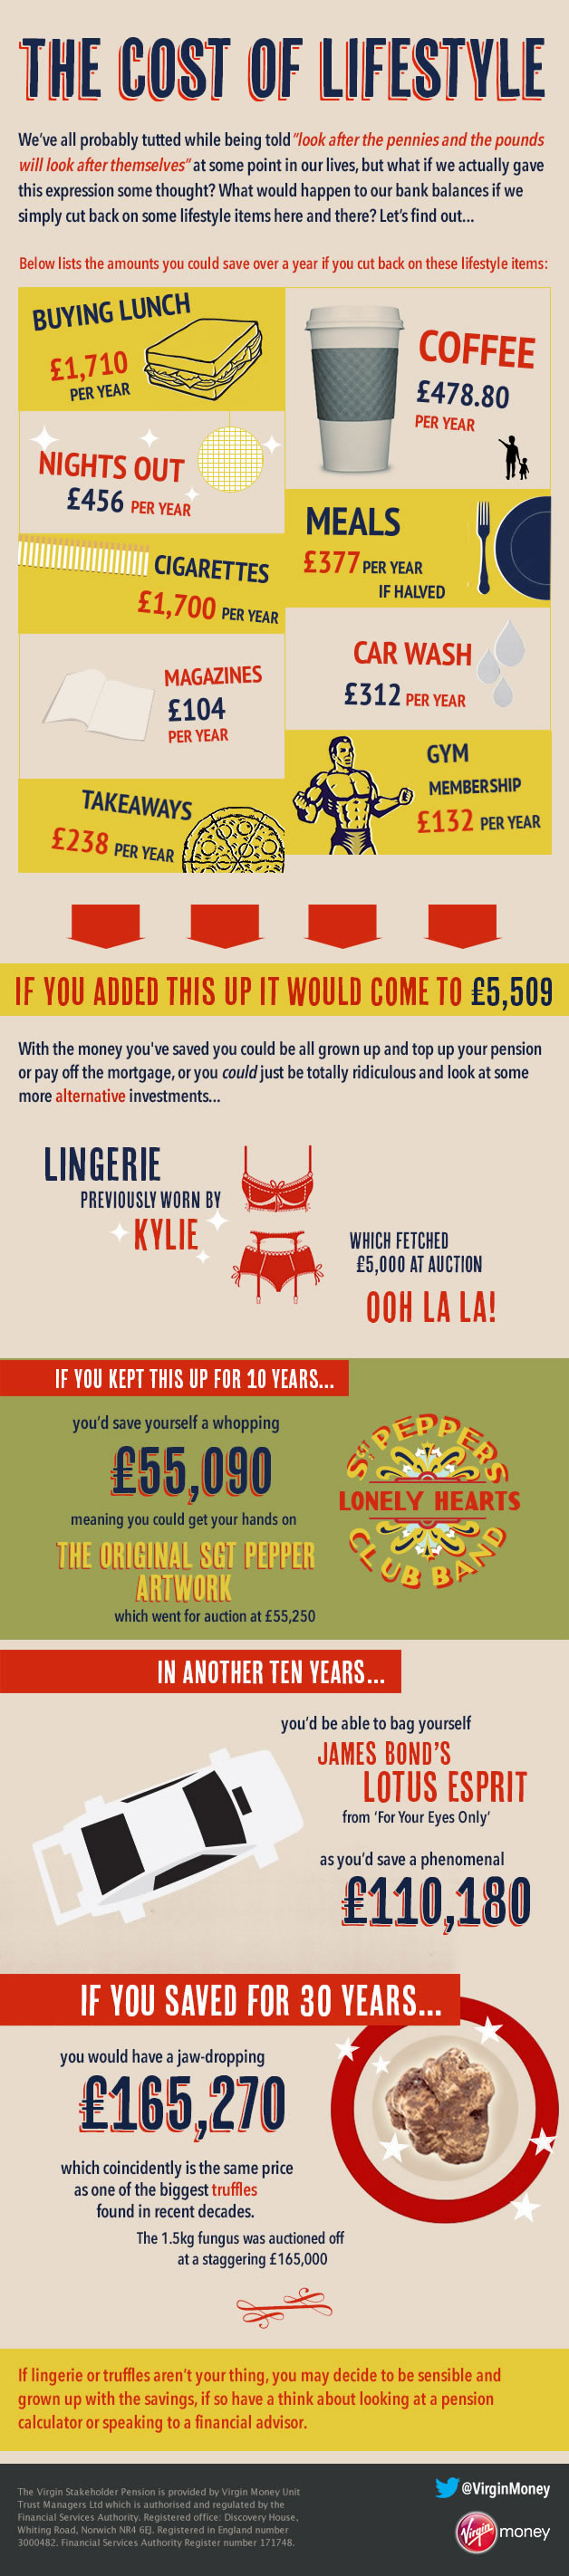 The Cost of Lifestyle - infographic